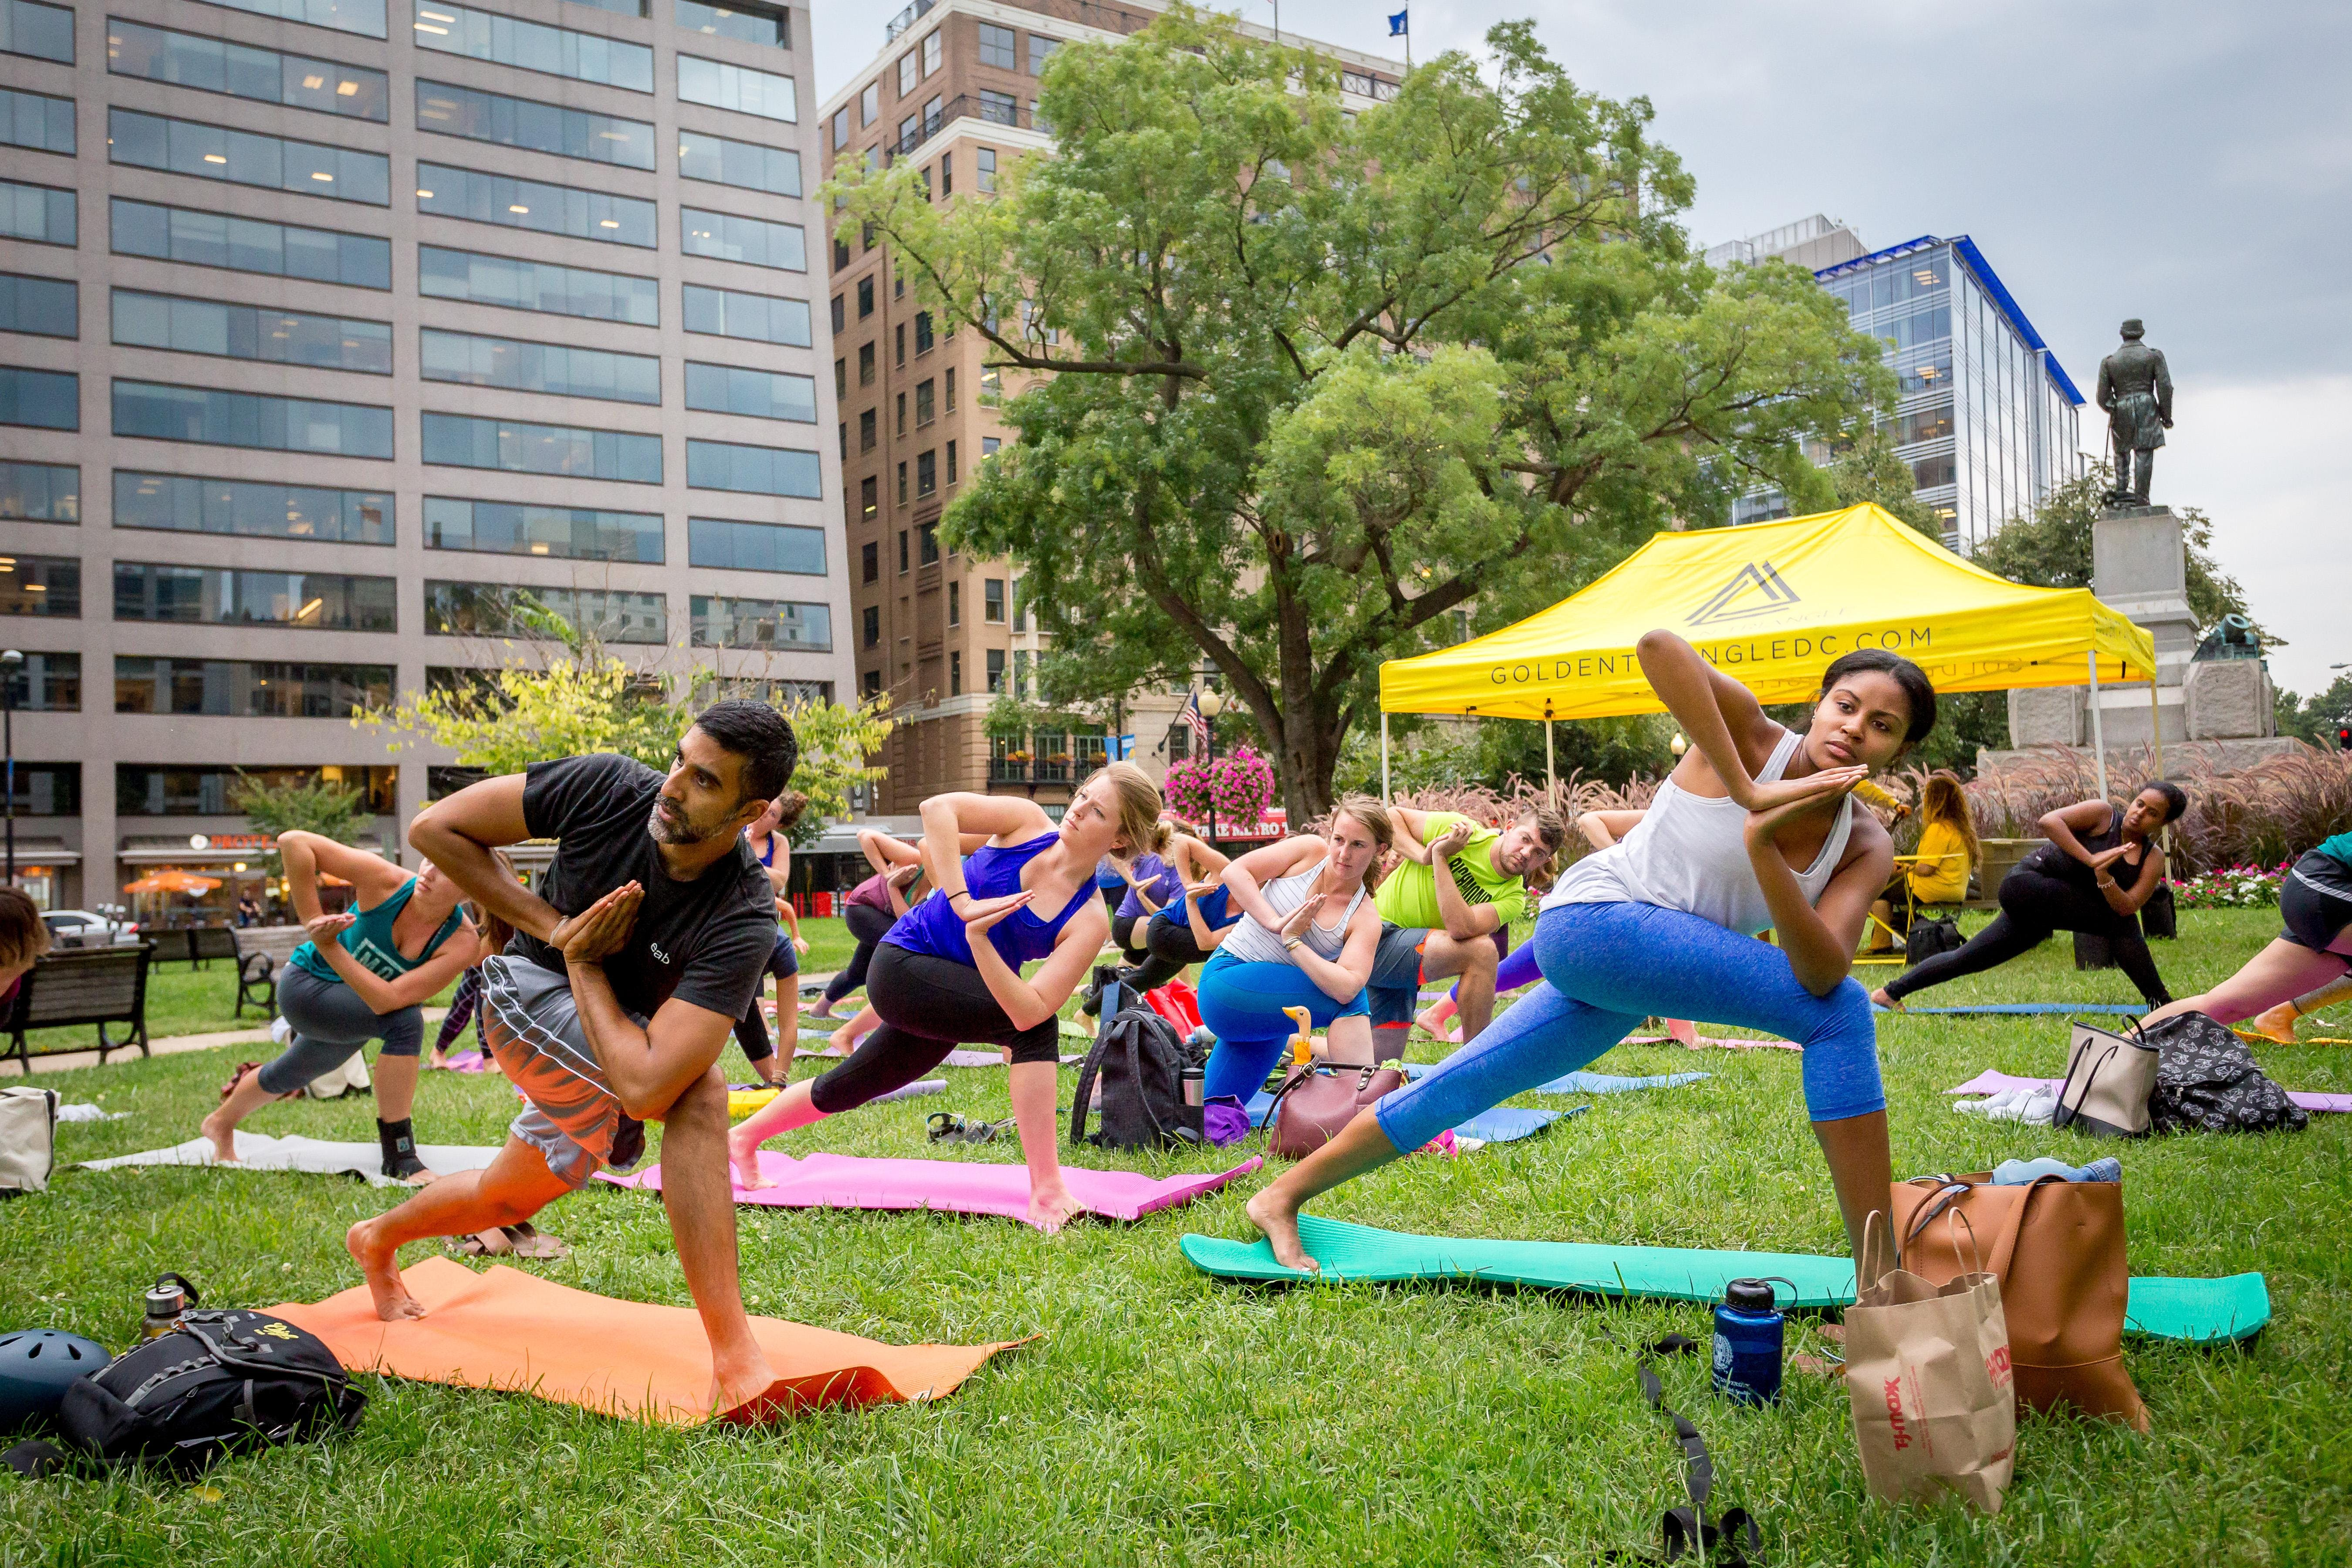 Every Tuesday, Wednesday and Thursday from now through September, the Golden Triangle BID is partnering with local business to offer free outdoor fitness classes taught by certified trainers. (Image: Courtesy Golden Triangle BID)